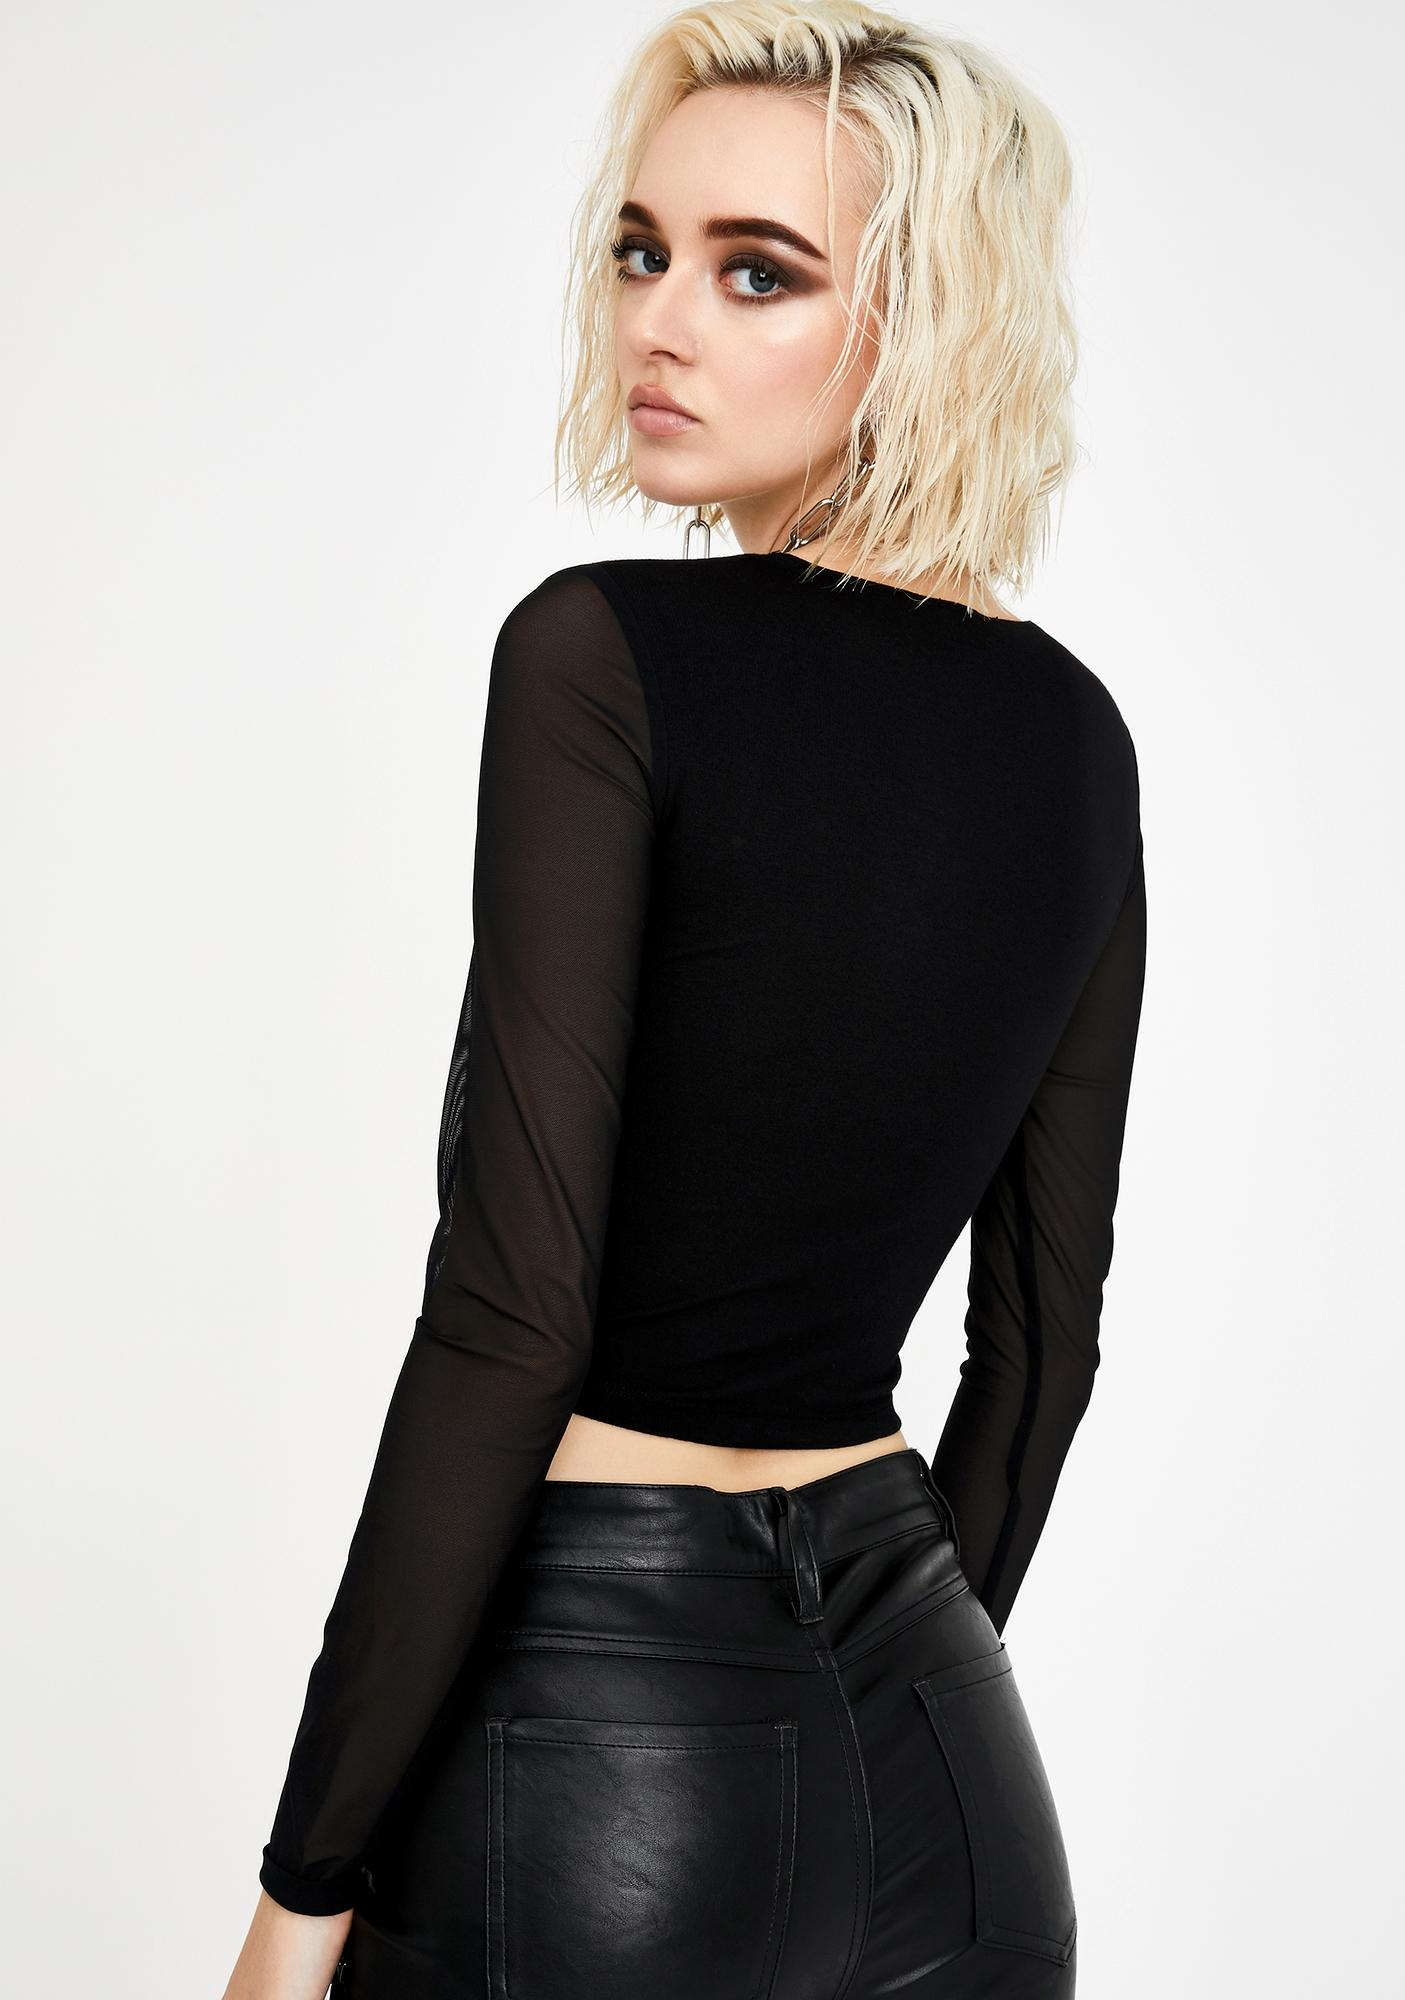 Kiki Riki Elite Encore Crop Top